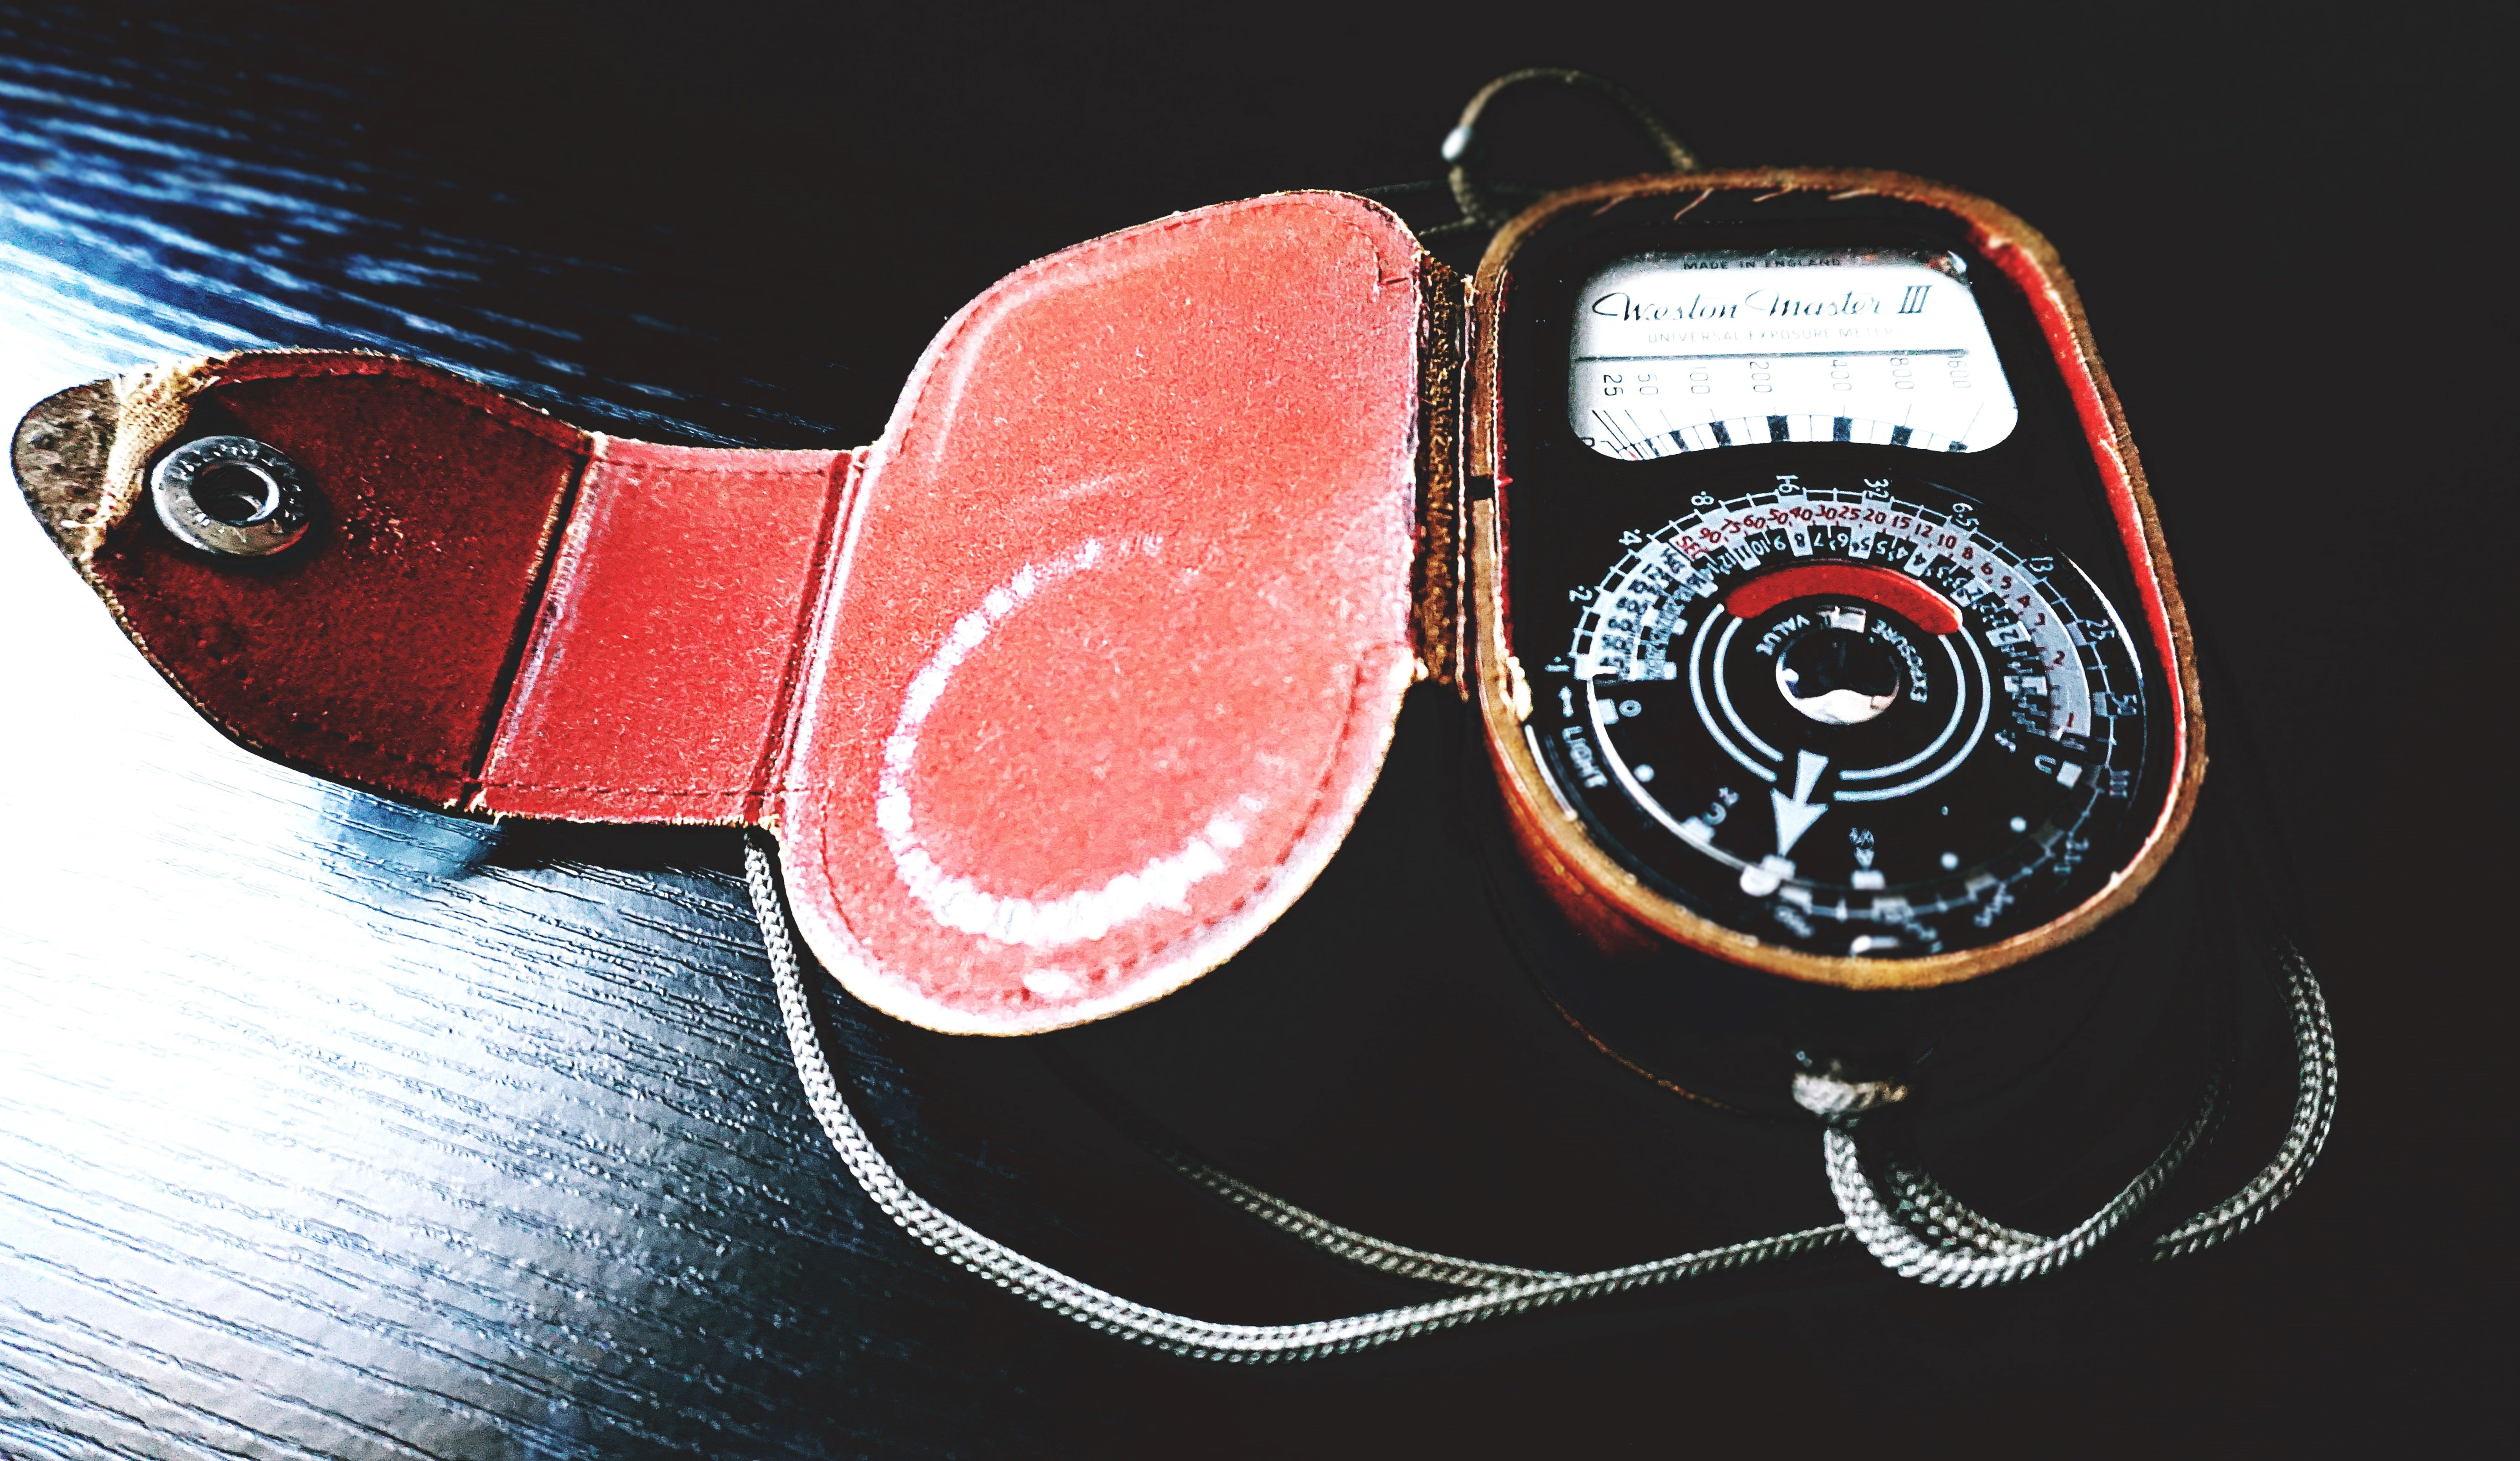 Analog Device on Black Wooden Surface